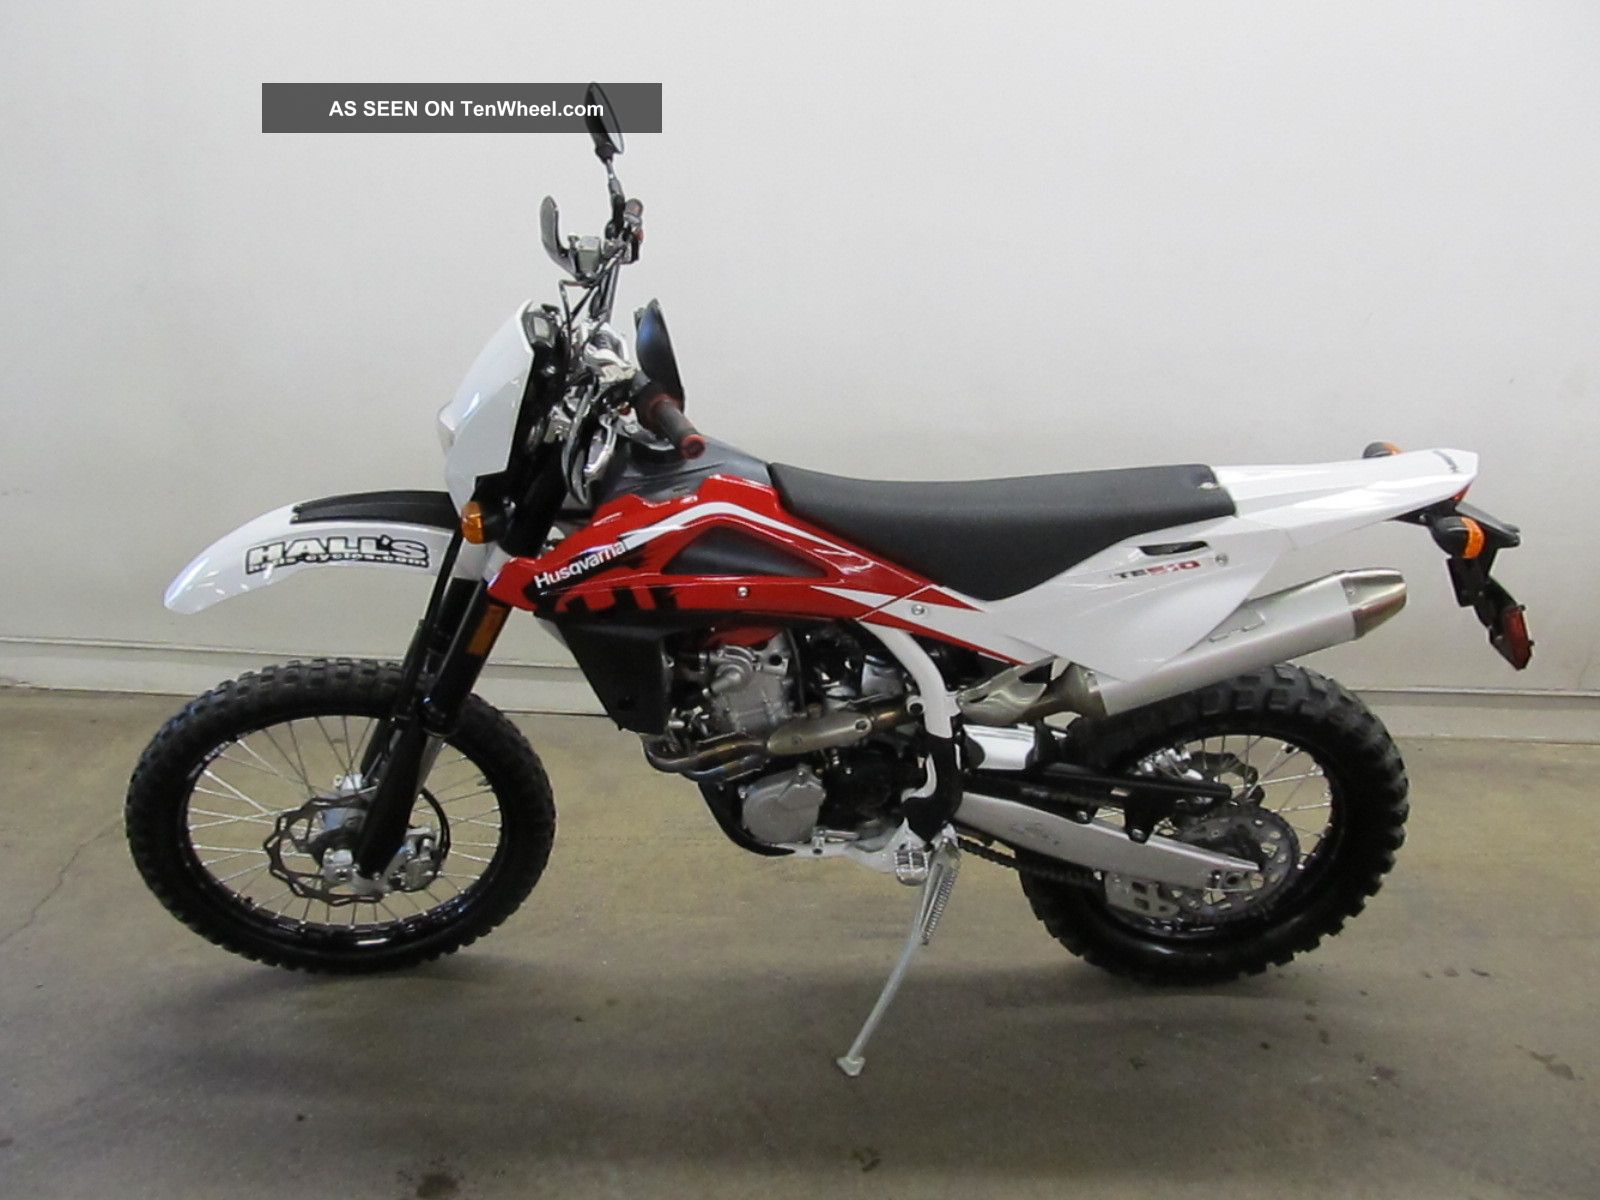 2010 Husqvarnate510 Enduro / Offroad Husqvarna photo